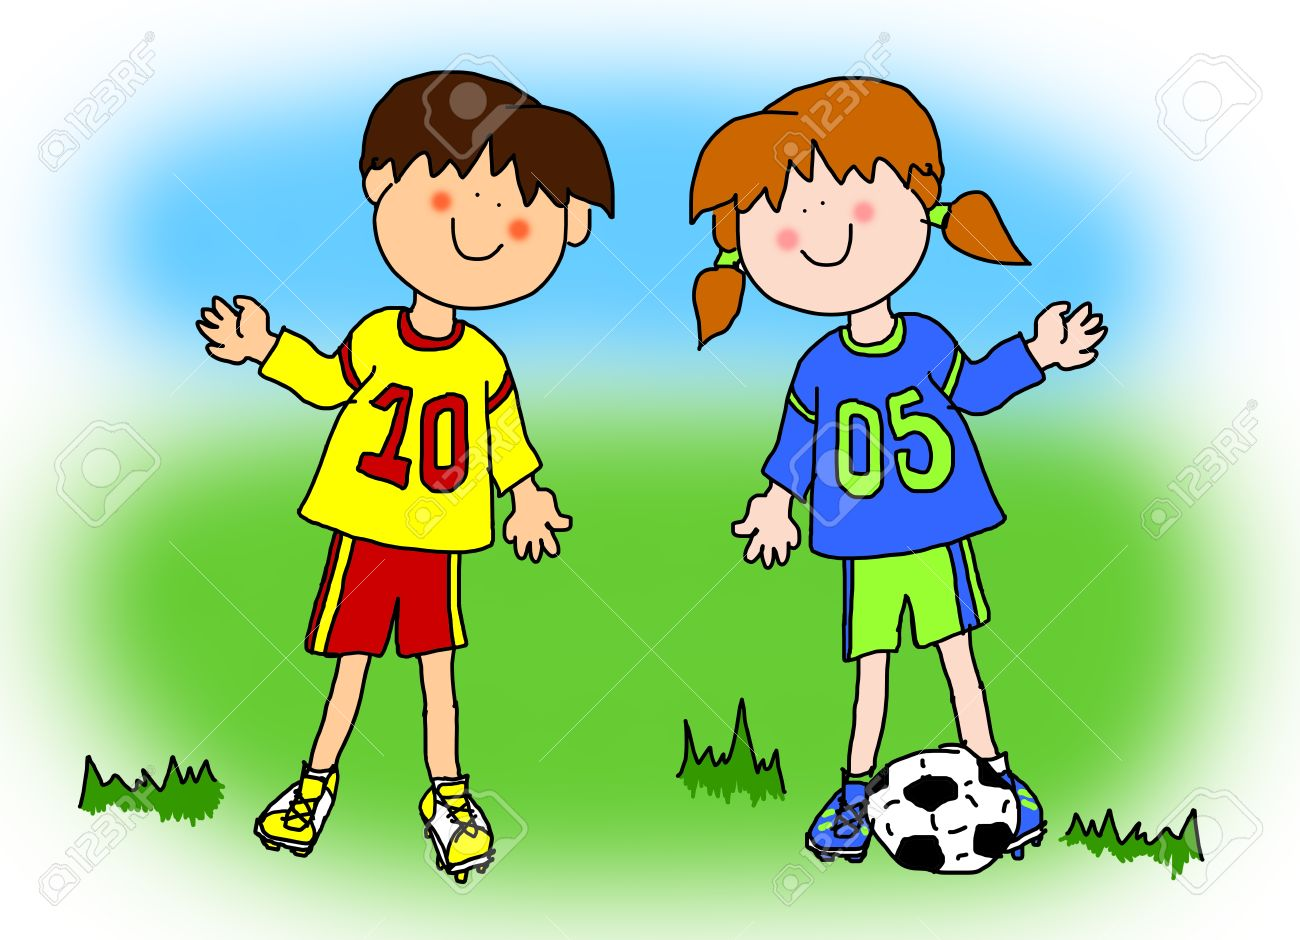 Fun Boy And Girl Cartoon Outline Playing Soccer Or Football In Their Team Uniform Large